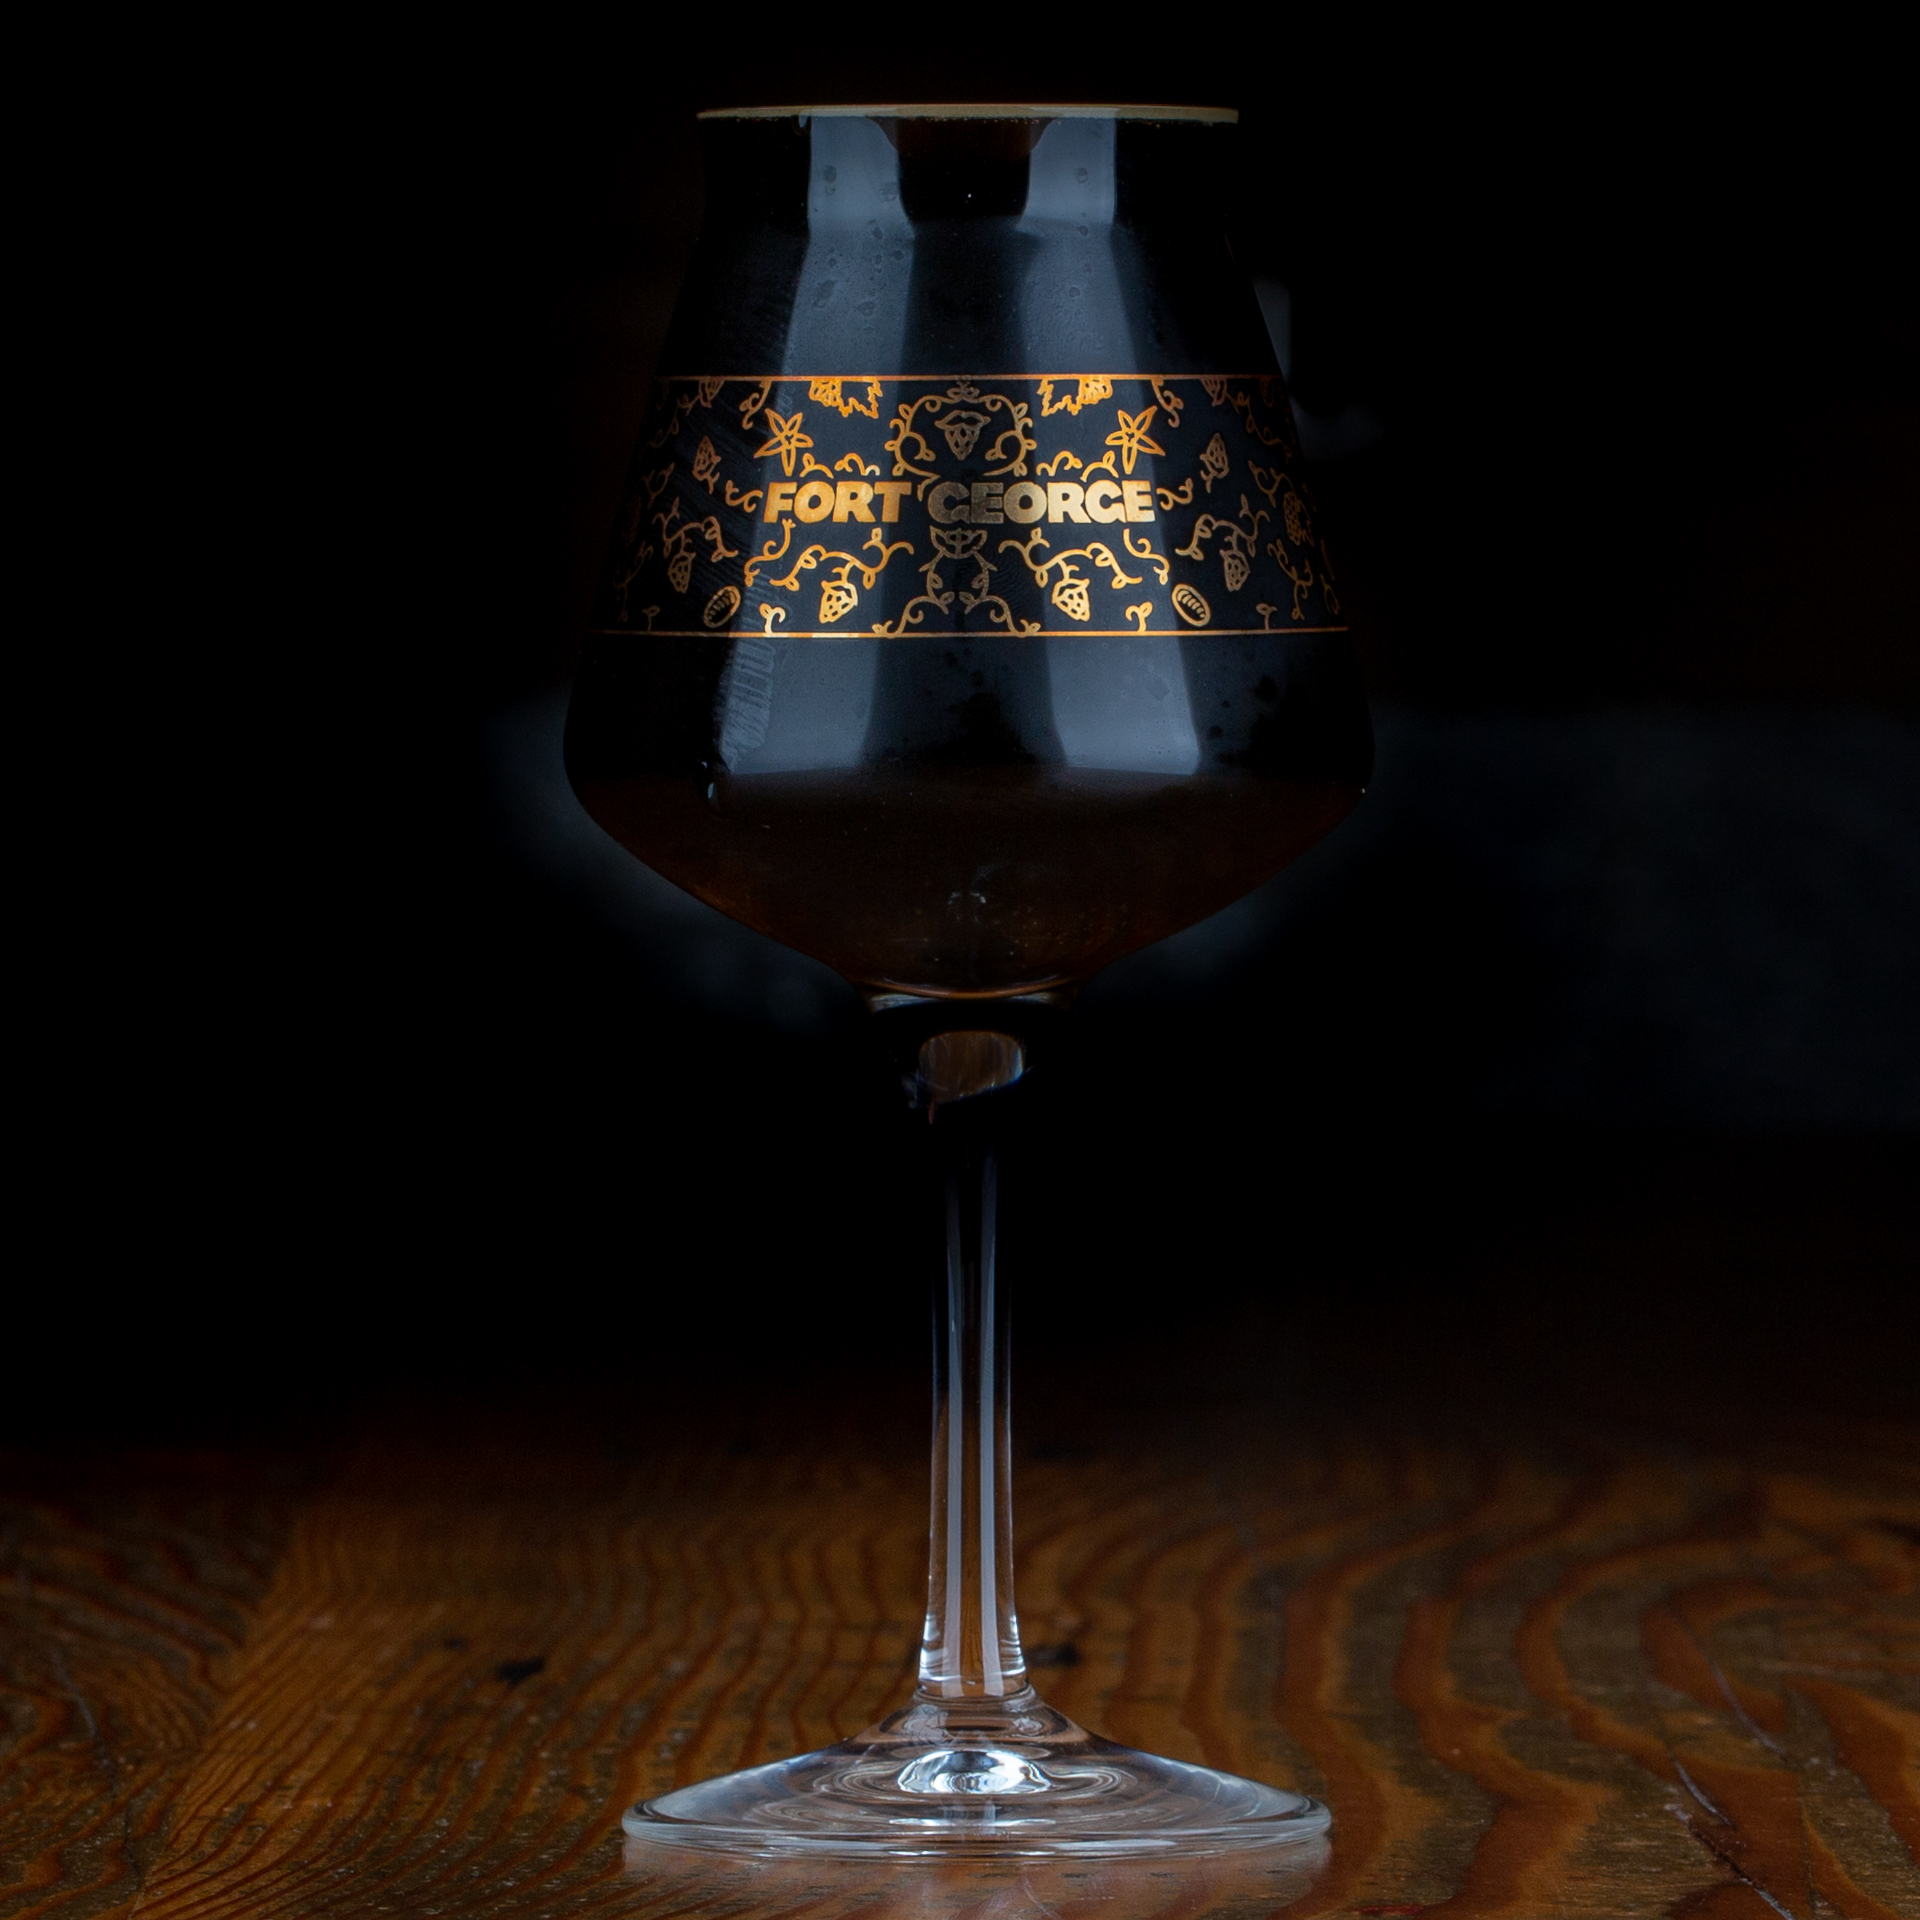 Stout Pour (image courtesy of Fort George Brewery)